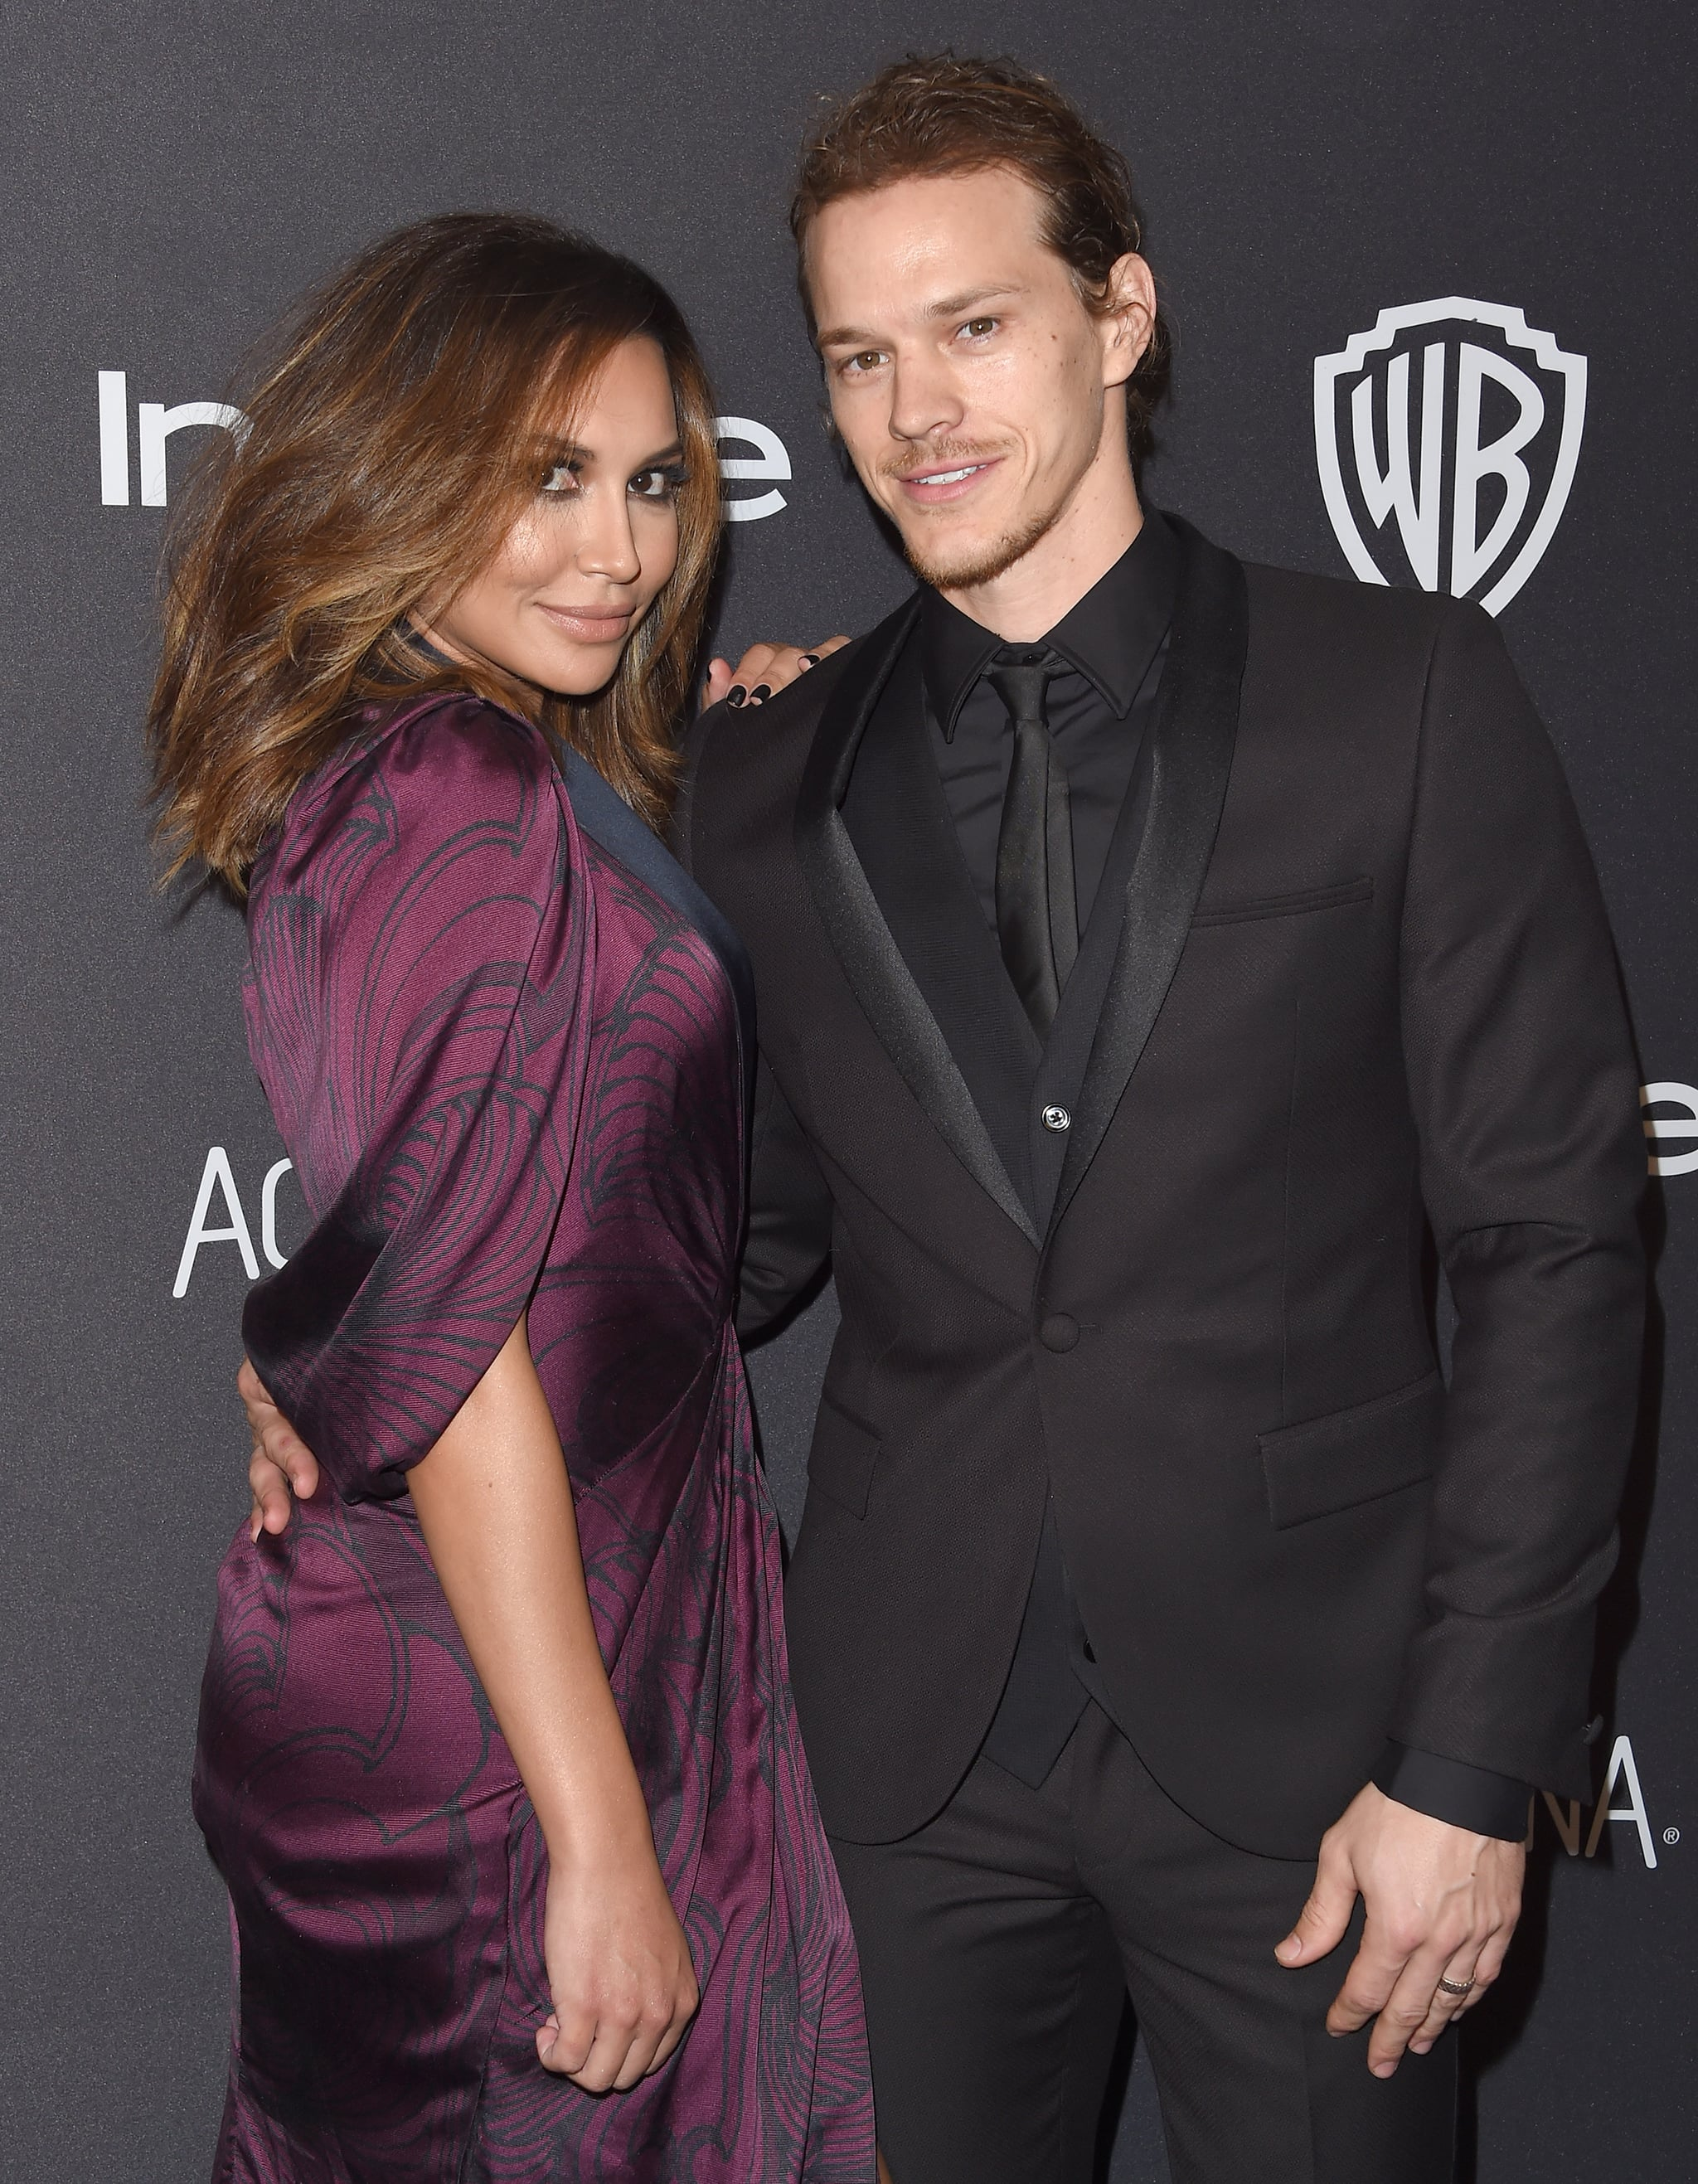 BEVERLY HILLS, CA - JANUARY 10:  Actors Naya Rivera and husband Ryan Dorsey arrive at the 2016 InStyle And Warner Bros. 73rd Annual Golden Globe Awards Post-Party at The Beverly Hilton Hotel on January 10, 2016 in Beverly Hills, California.  (Photo by Axelle/Bauer-Griffin/FilmMagic)